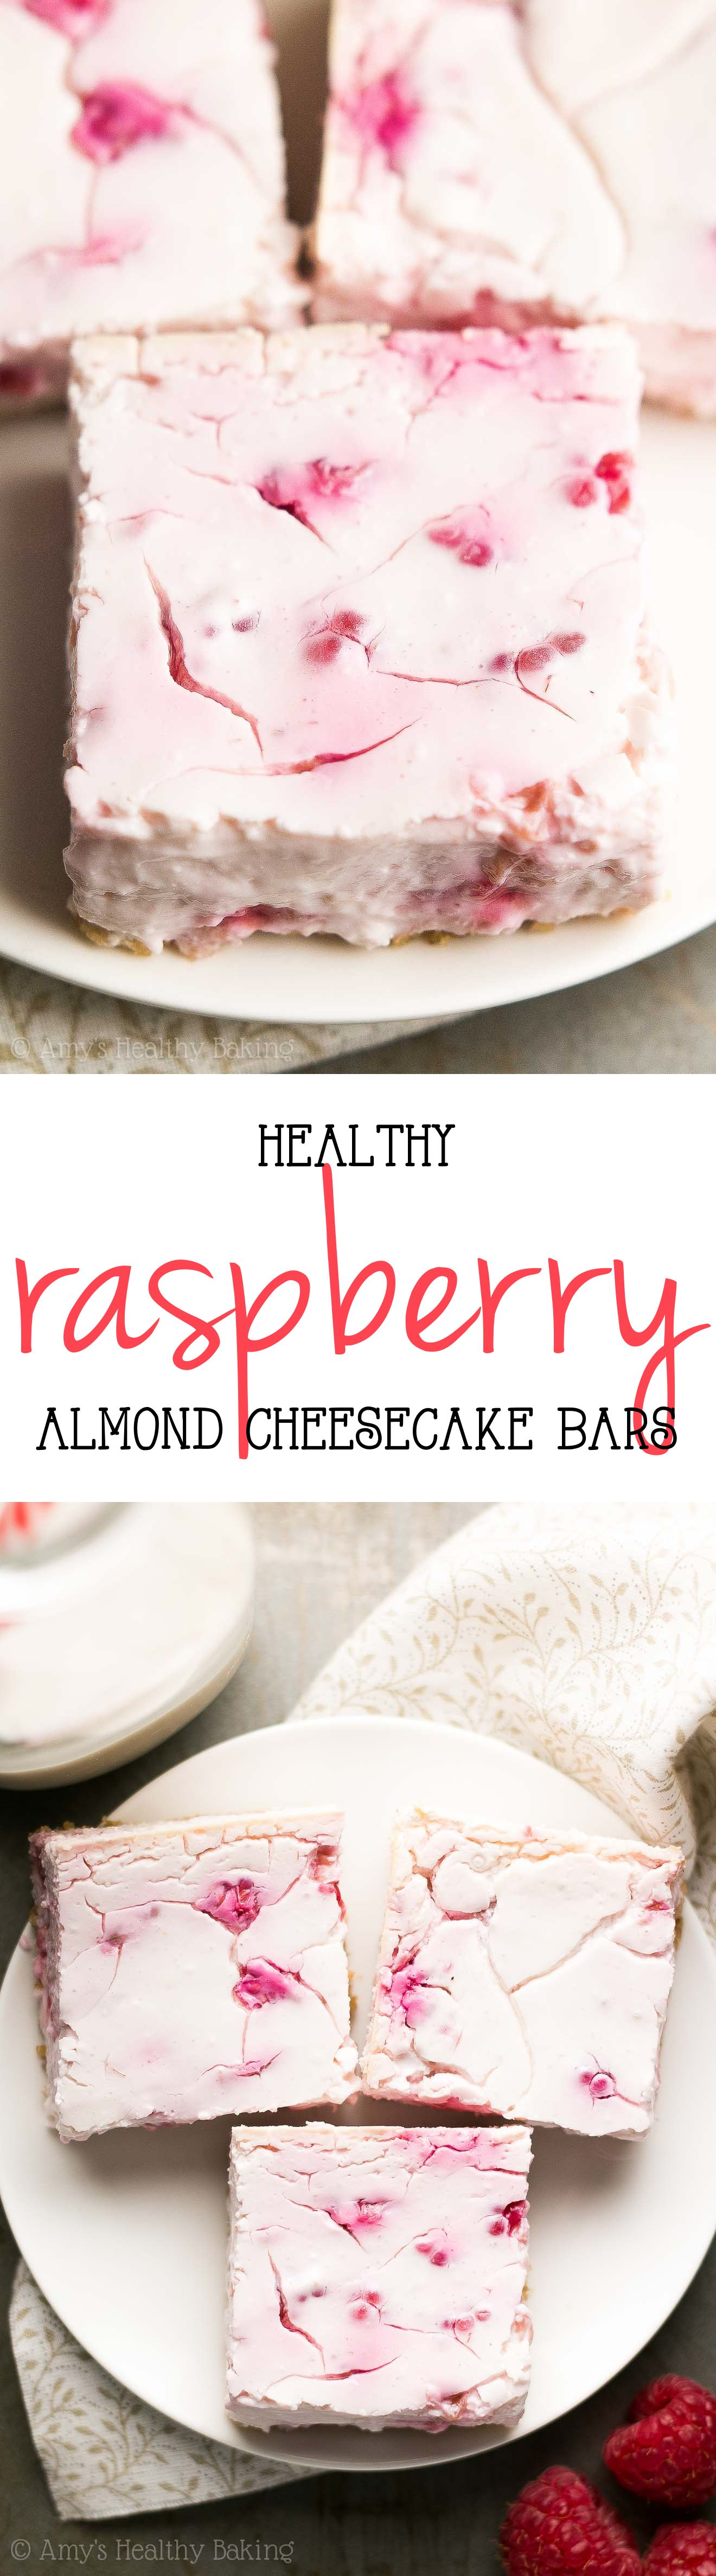 Healthy Raspberry Almond Cheesecake Bars -- no butter, oil, or sugar & only 68 calories! Sweet, creamy & positively amazing! ad